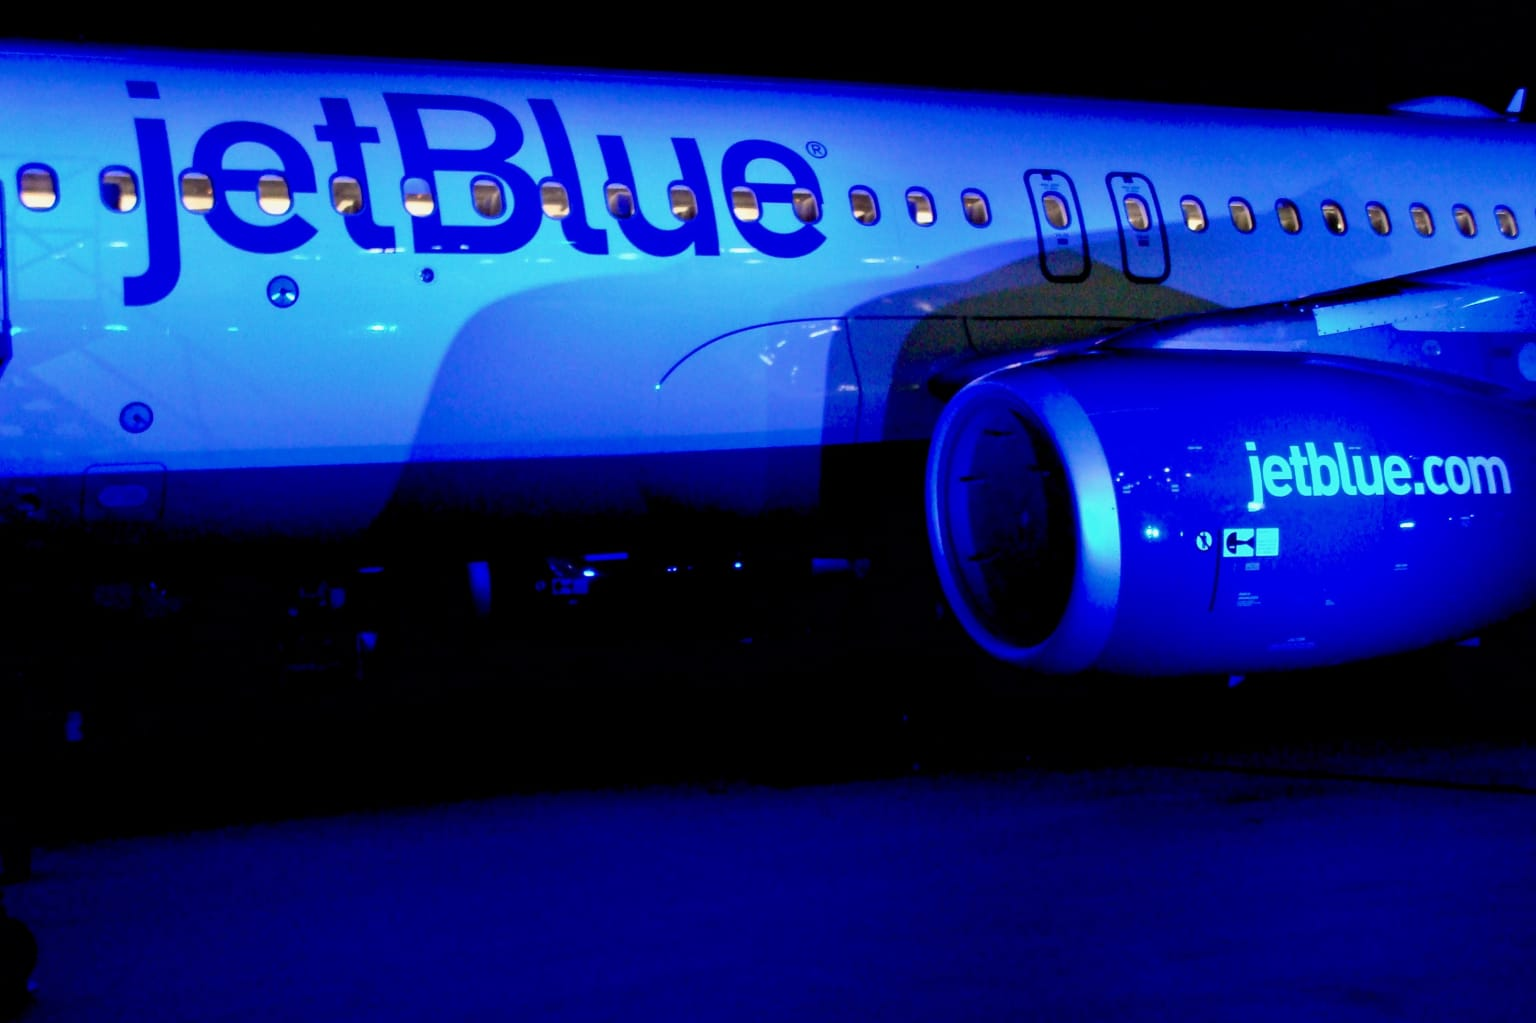 Media Event to Reveal JetBlue's New Aircraft